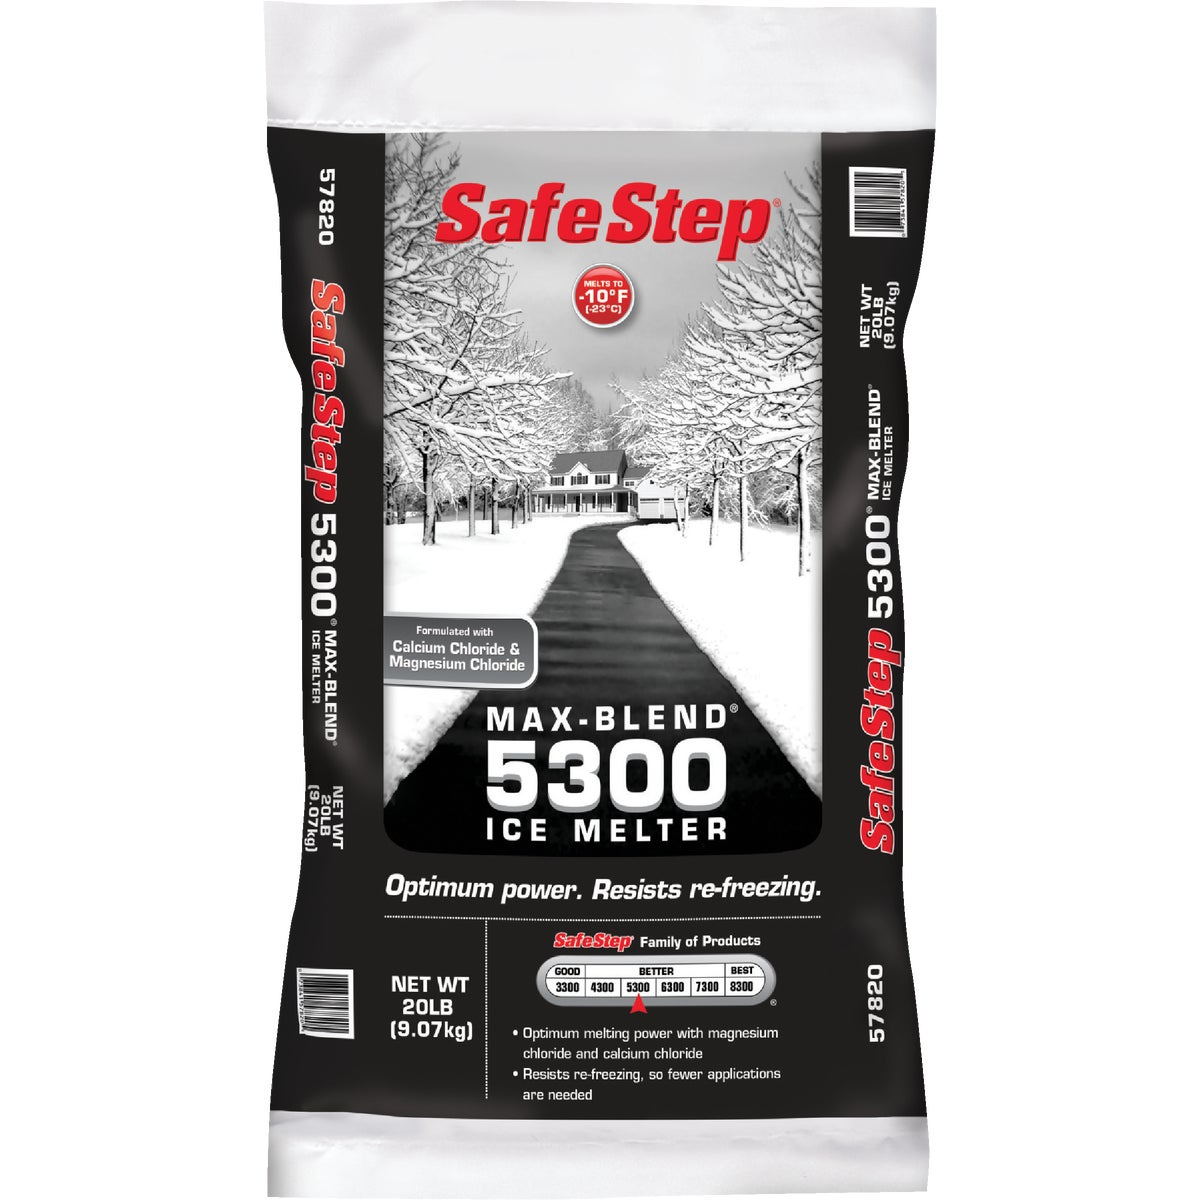 20LB ICE MELTER